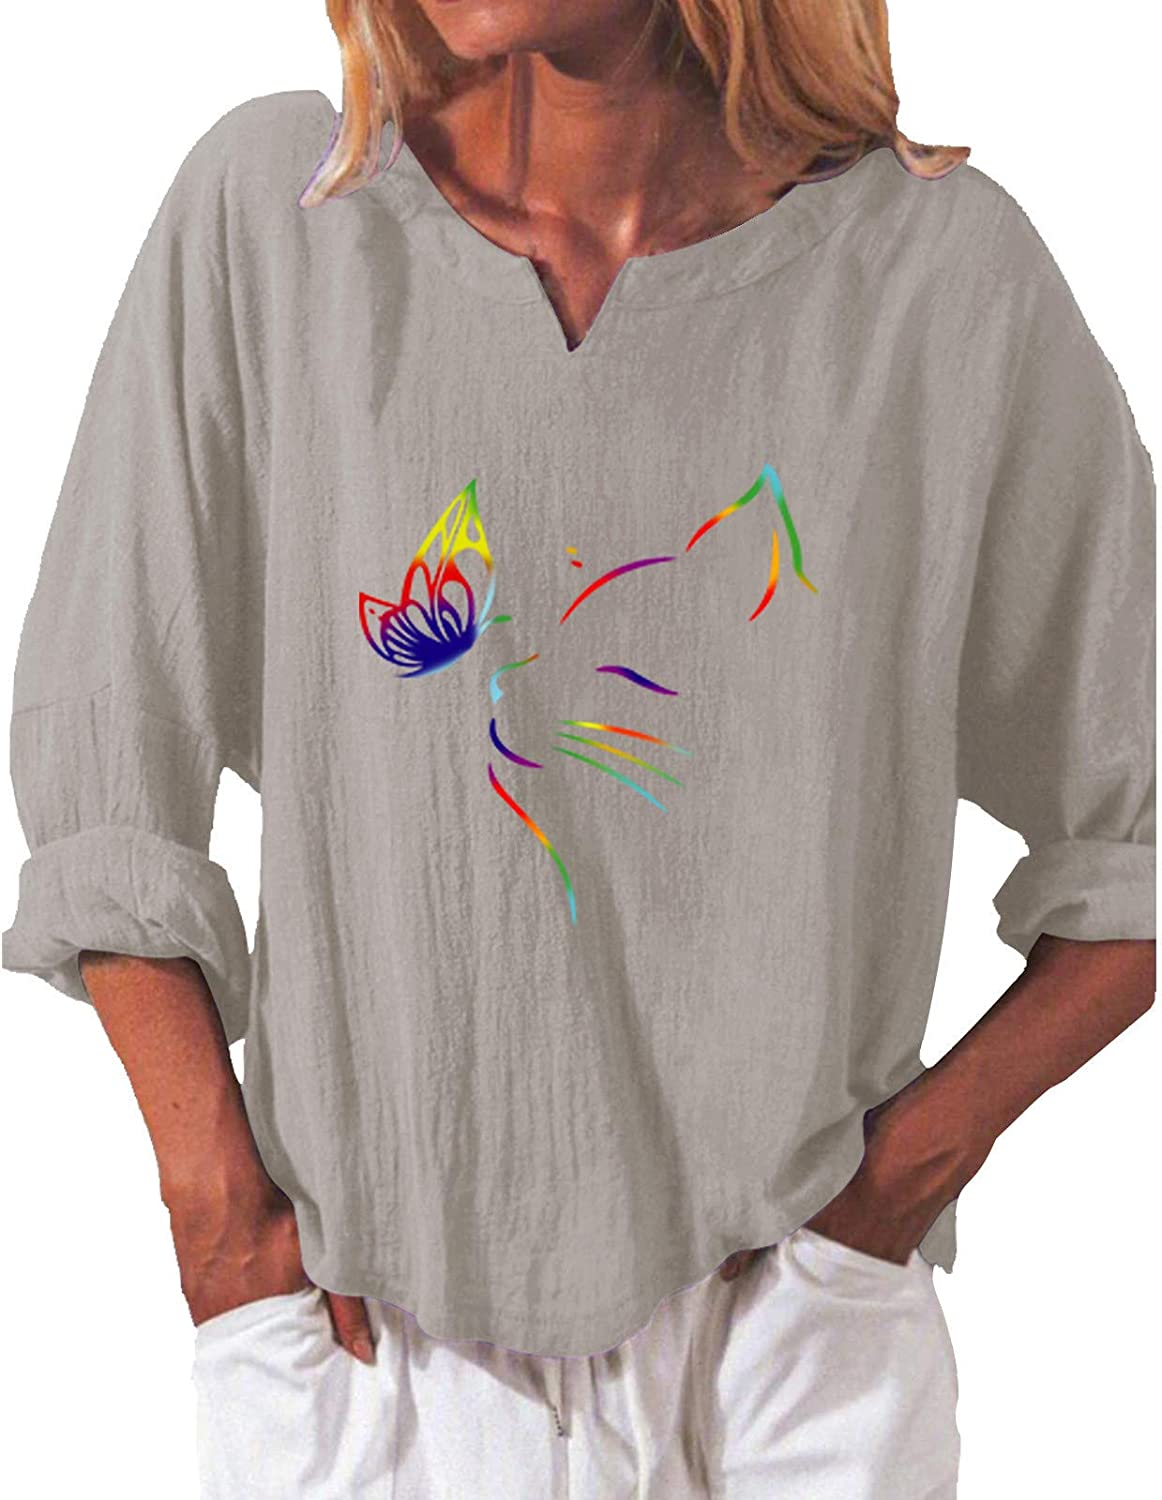 Forwelly Plus Size Linen Shirt for Women Ladies Crew Neck Tee Tops Long Sleeve Pullover